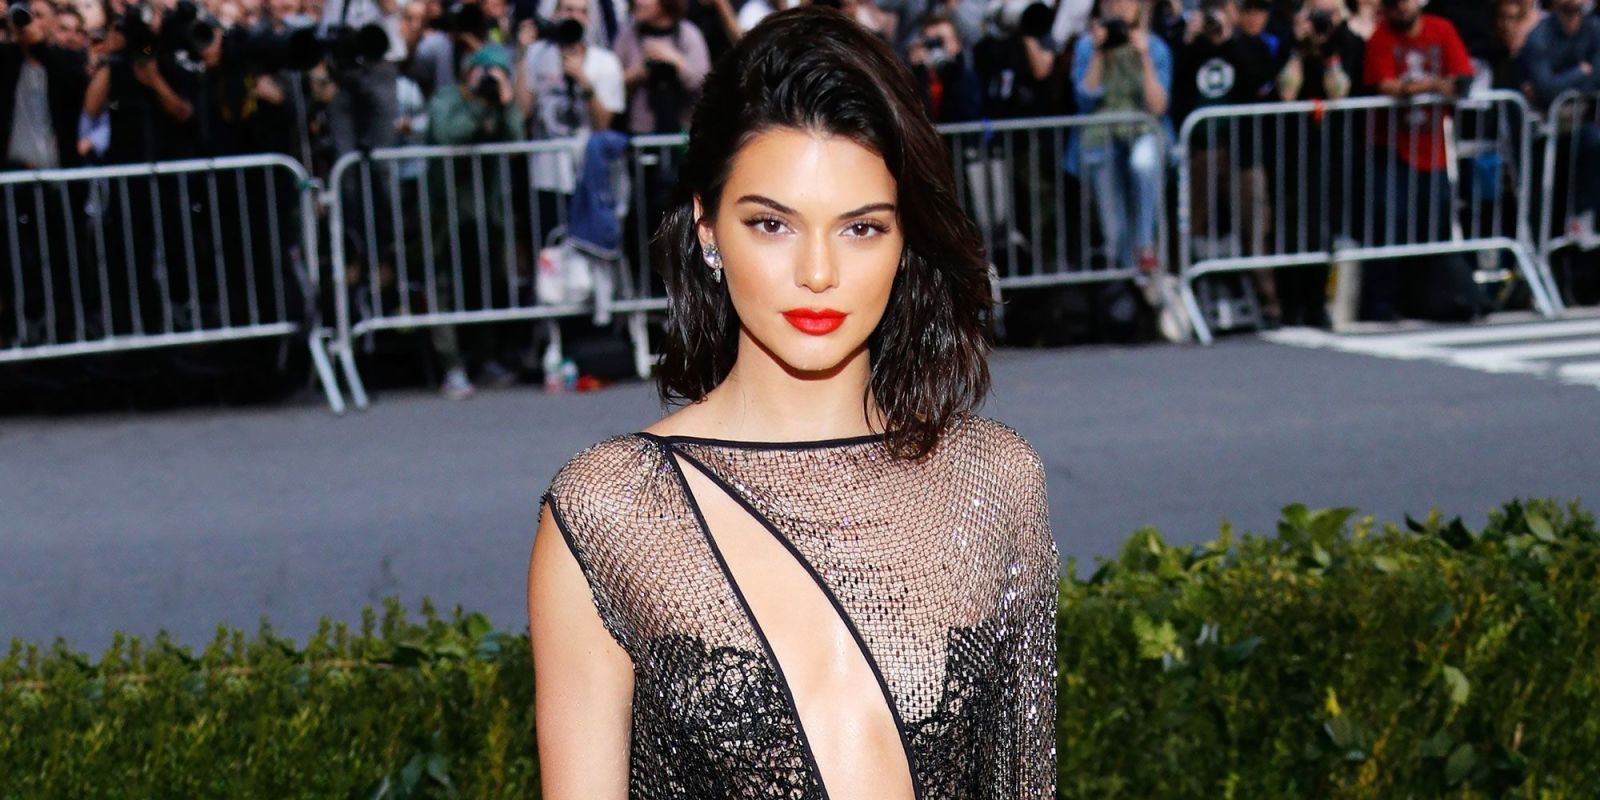 Kendall Jenner Calls What Caitlyn Jenner Said in Her Memoir 'Insane'